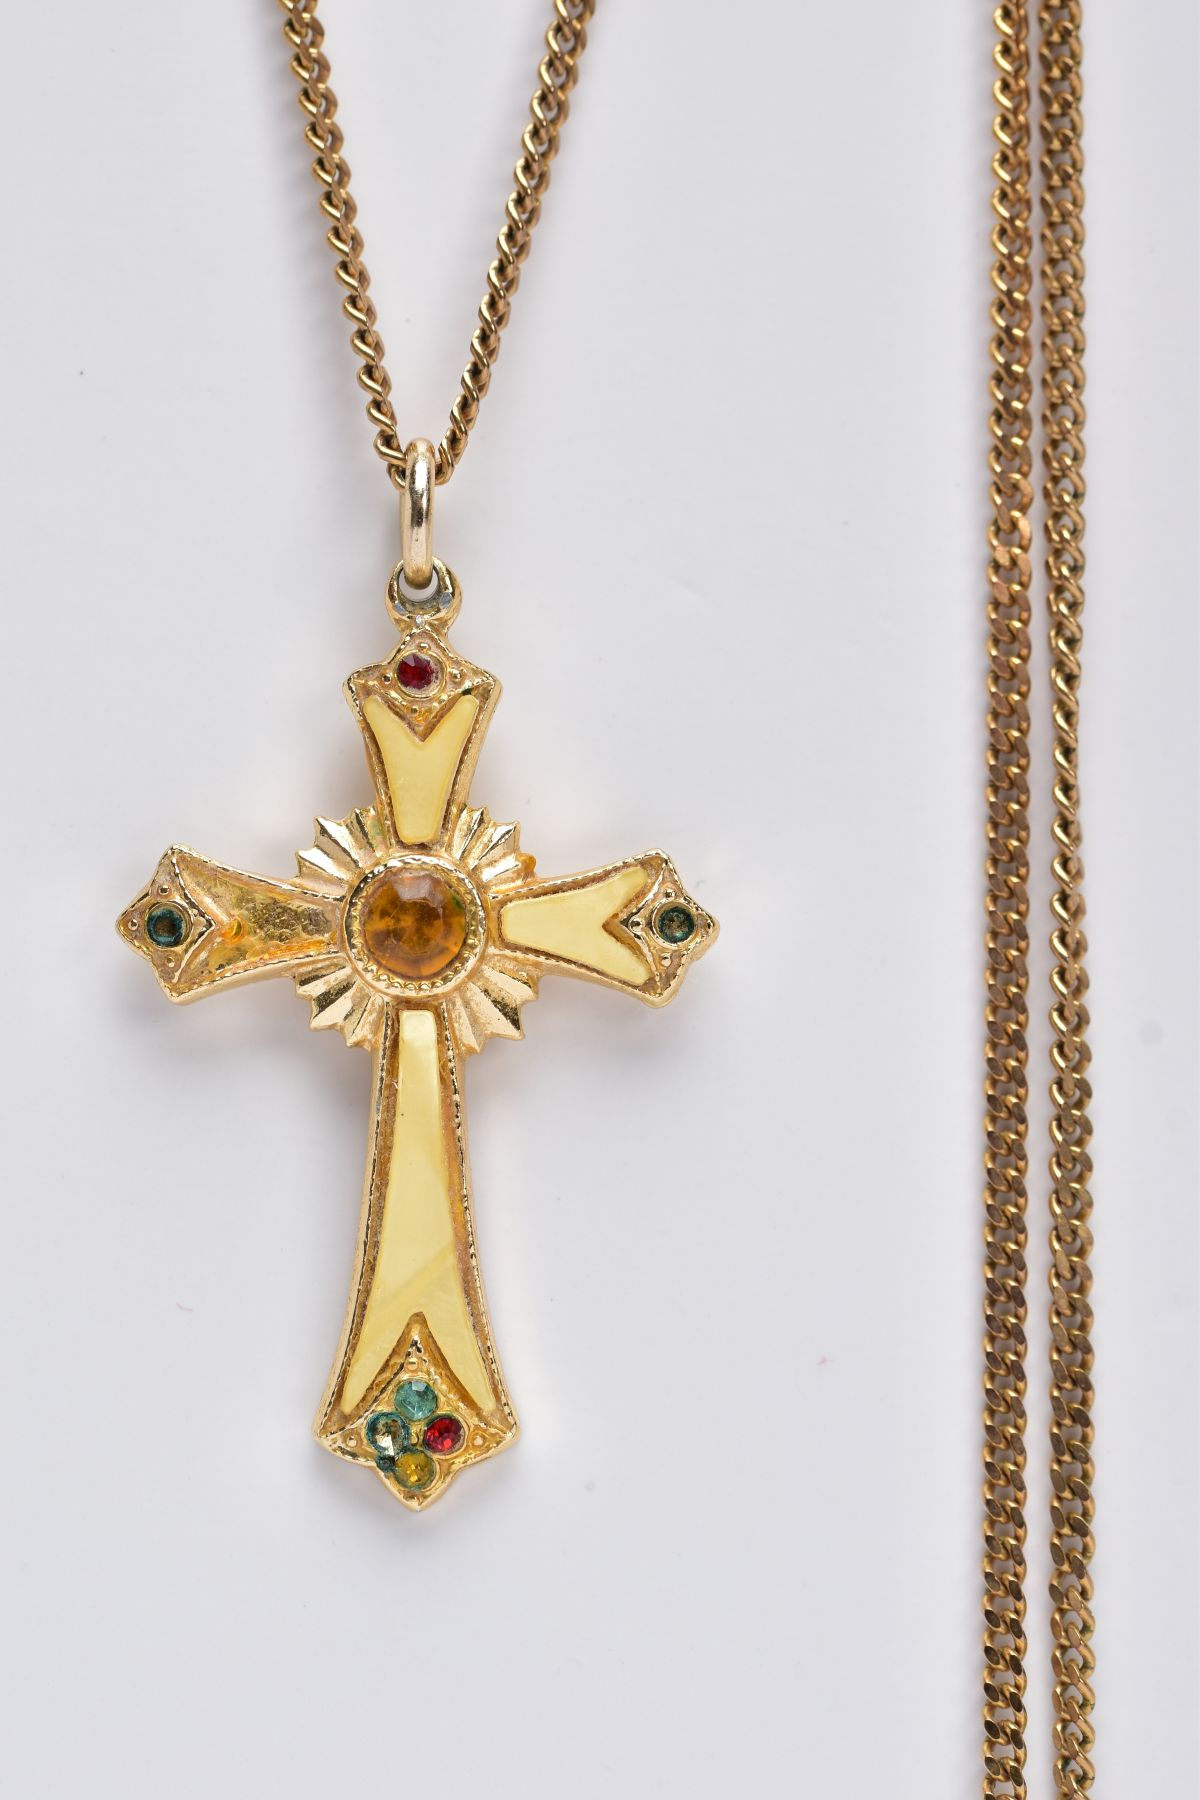 A 9CT GOLD CHAIN WITH A YELLOW METAL CROSS PENDANT, the curb link chain fitted with a spring